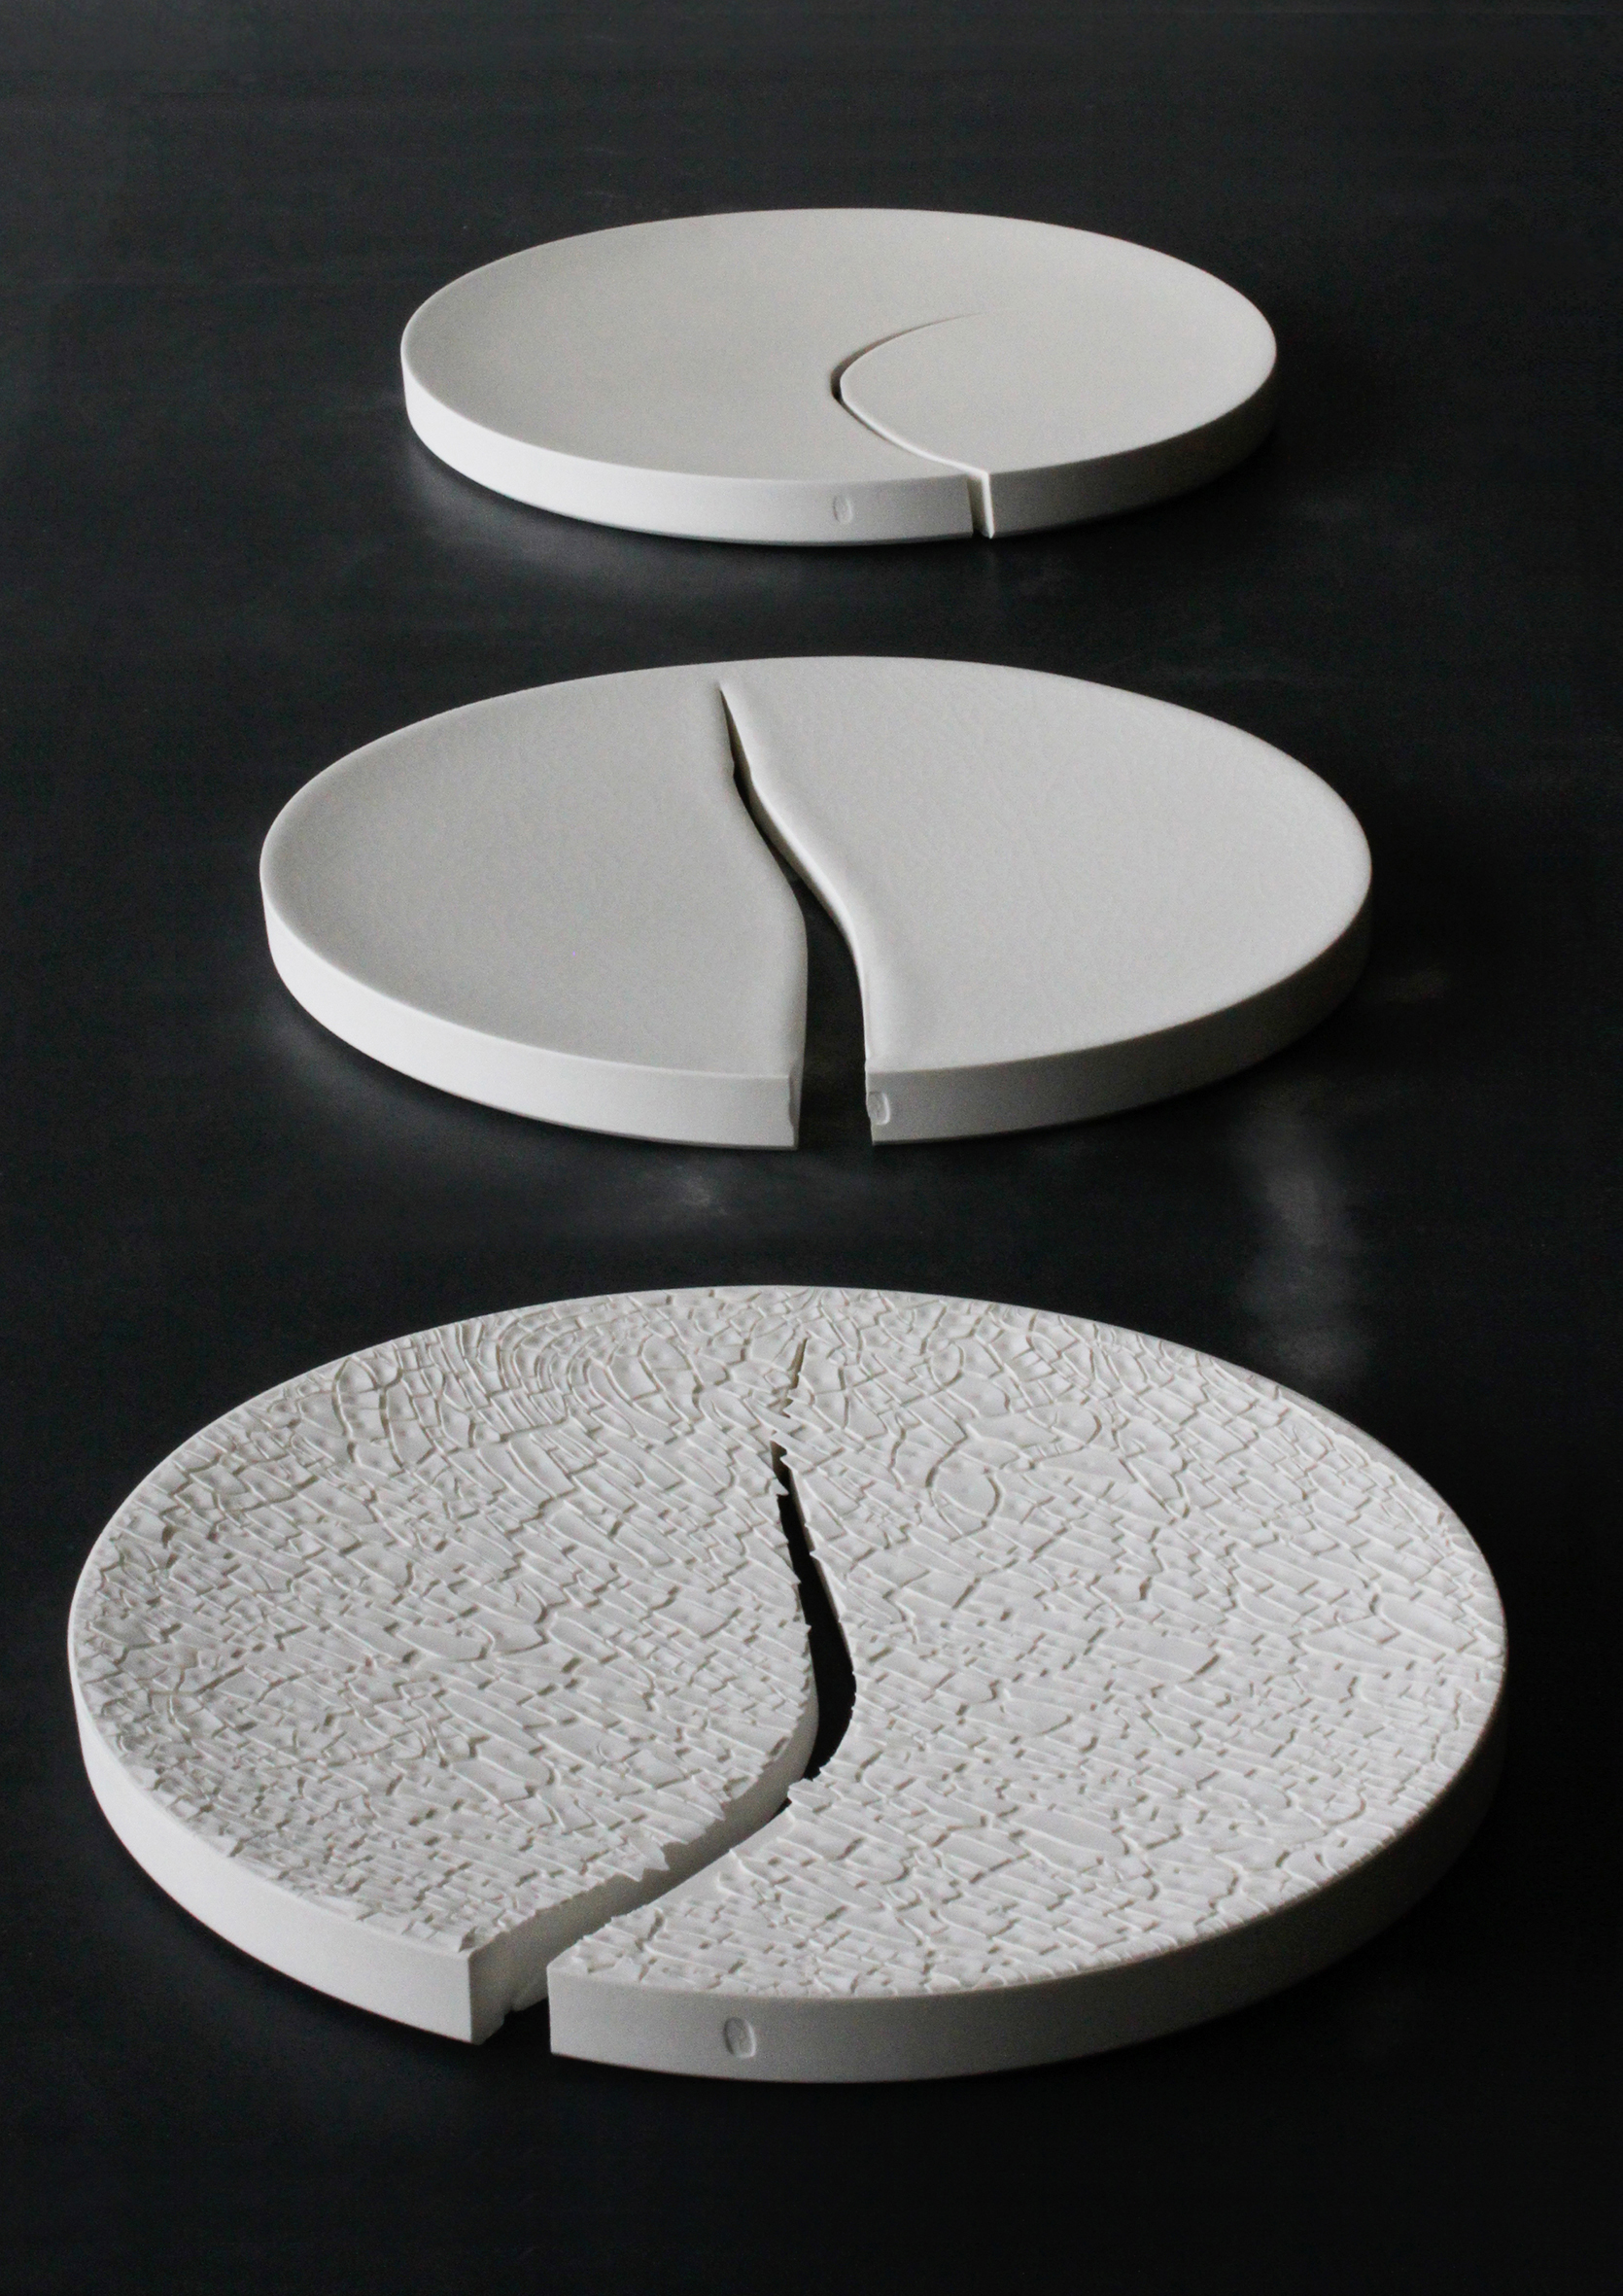 Still / 2011  Material / Solid-cast porcelain   Art work inspired by the music of Latvian composer Péteris Vasks and the earthquake that occurred in Japan, 11.3.2011.   Exhibited at LB contemporary gallery in 2011 and Caisa in 2012, Helsinki.